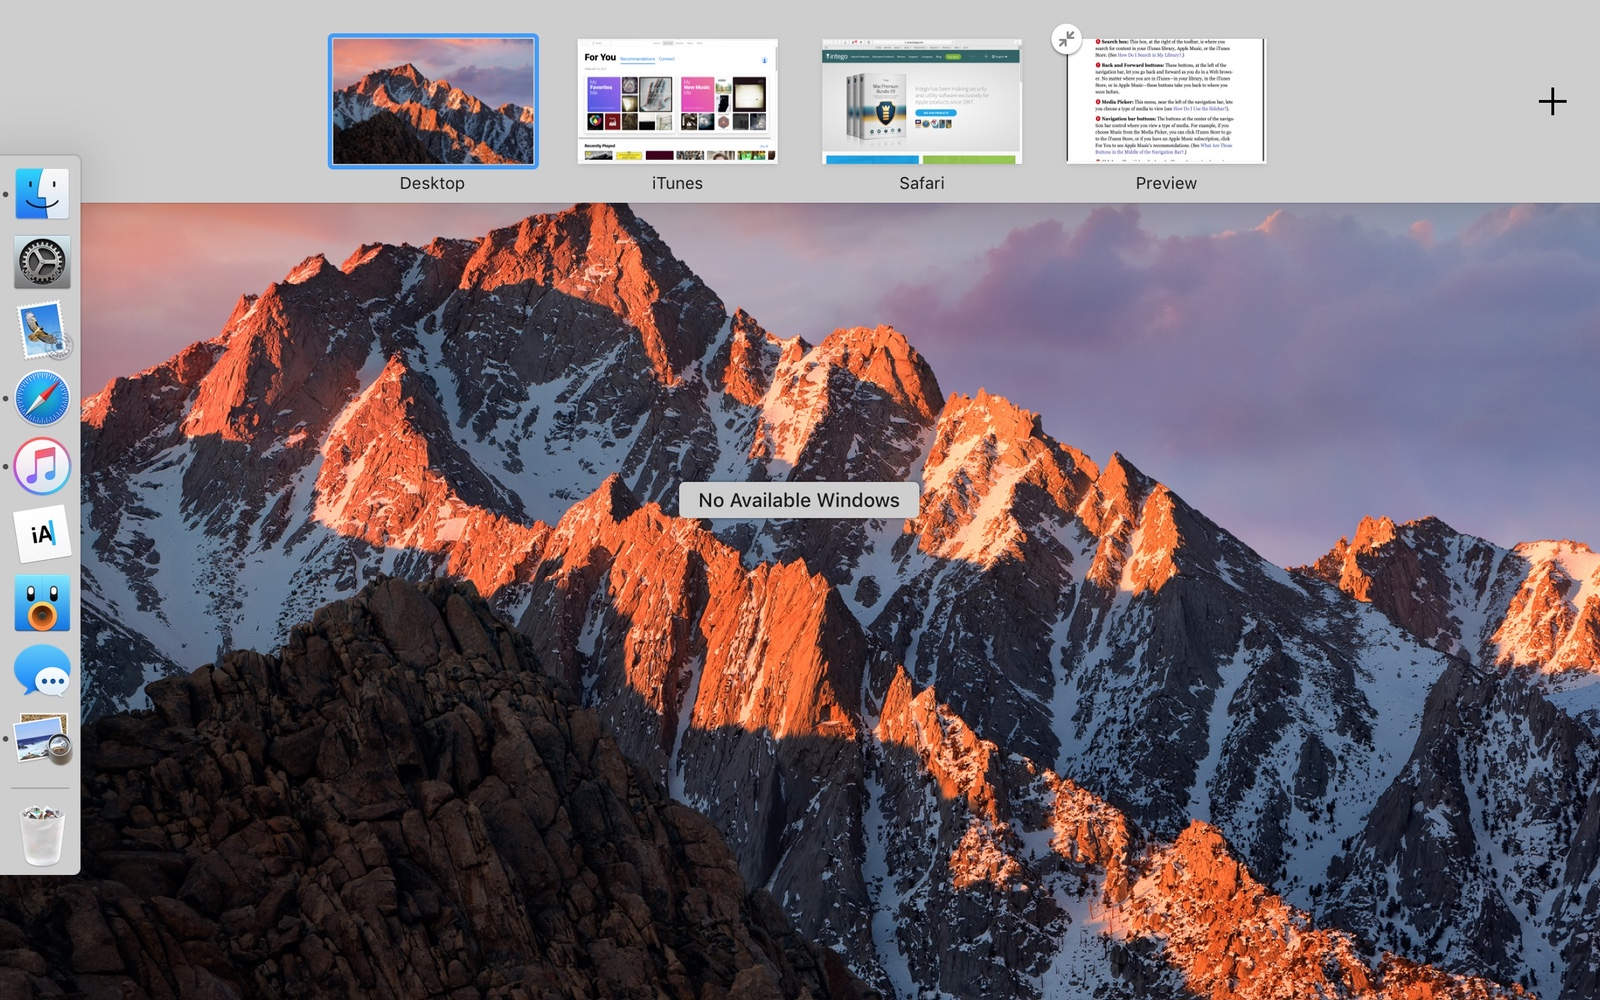 How to Enter and Exit Full Screen Mode in macOS | The Mac Security Blog